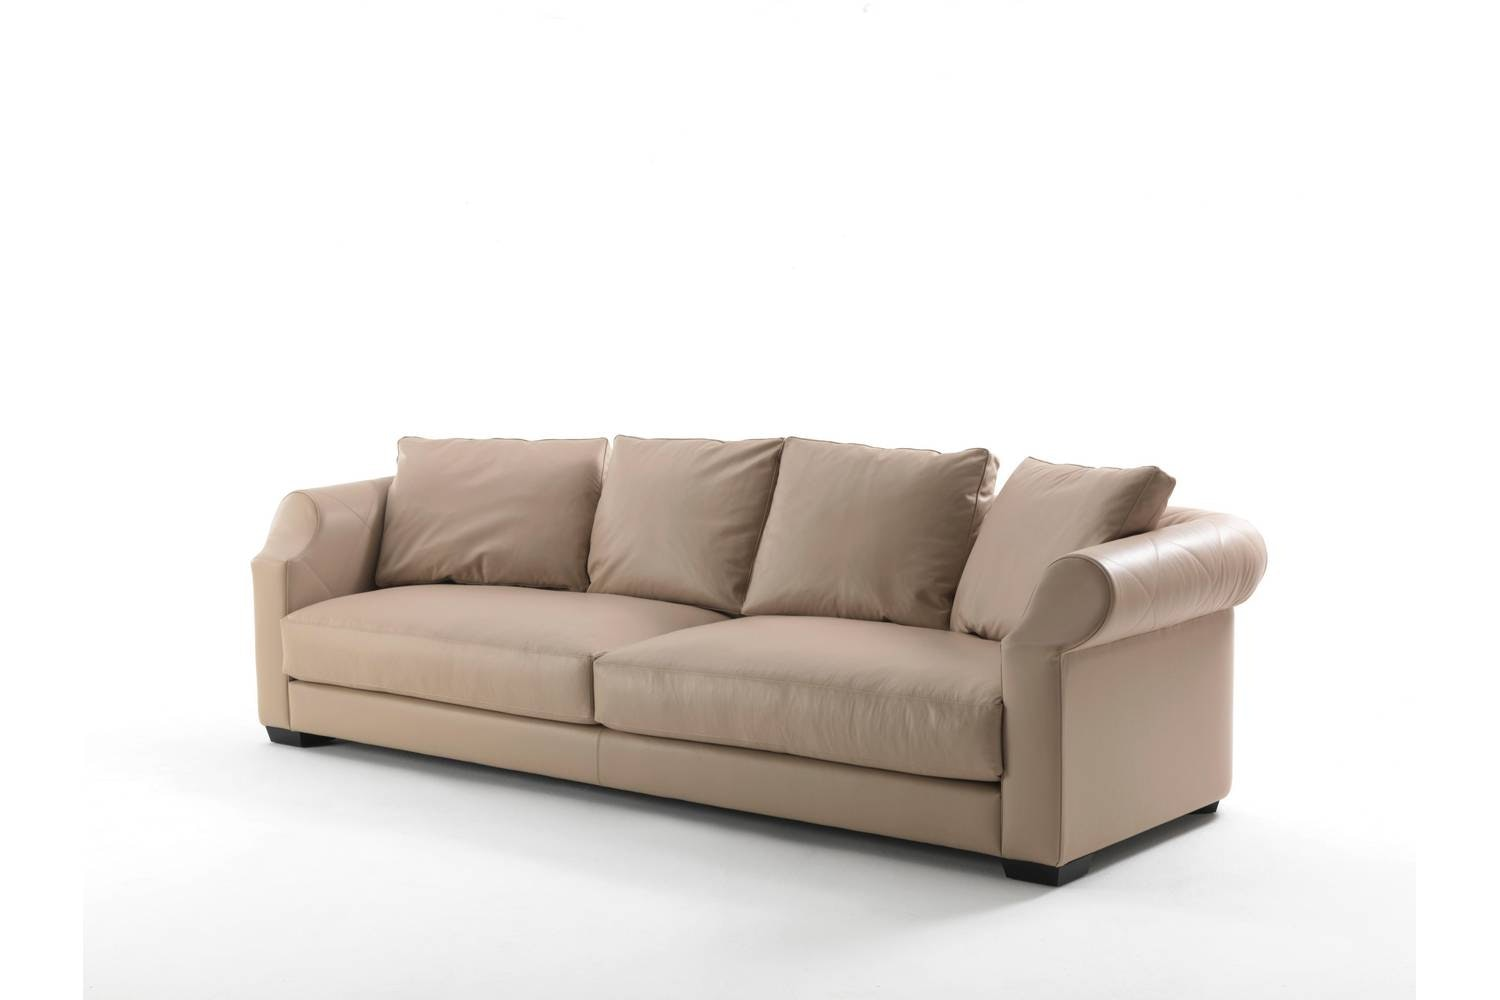 Philippe Sofa by E. Garbin - M. Dell'Orto for Porada